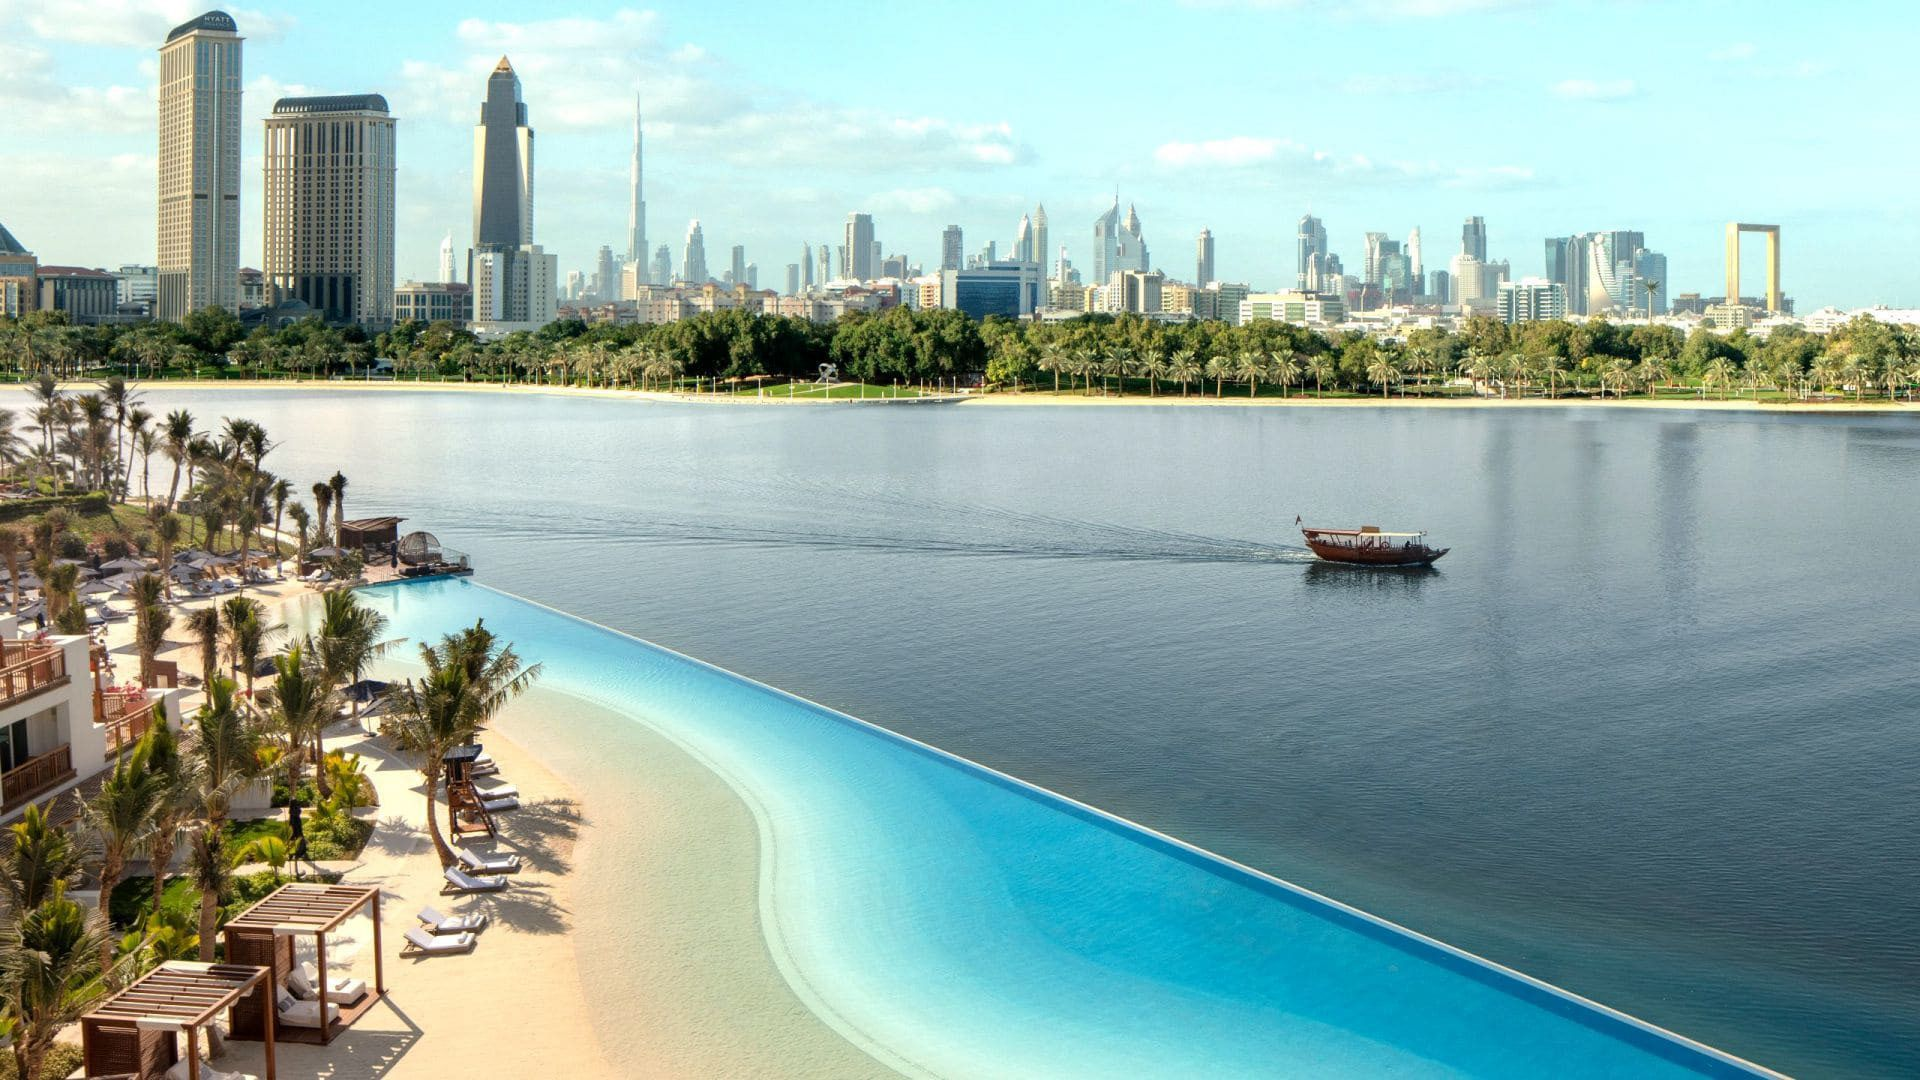 Check out this behance project expo 2020 in dubai